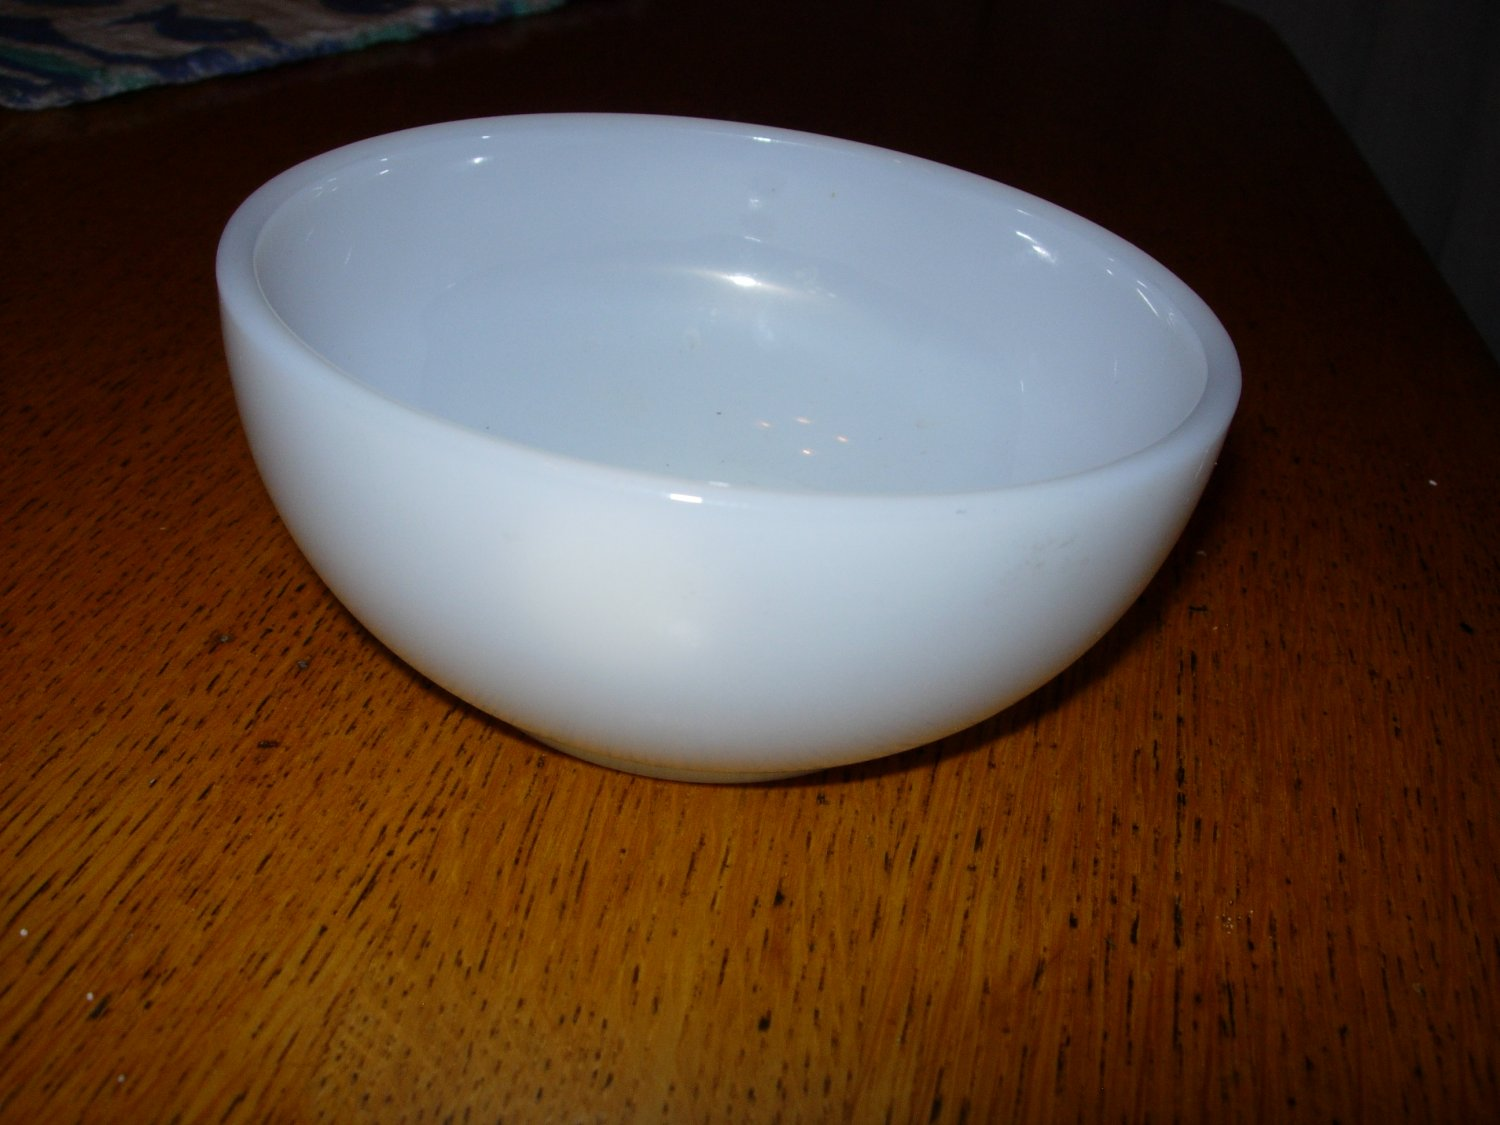 Anchor Hocking Fire King White 10oz Cereal/Chili Bowl